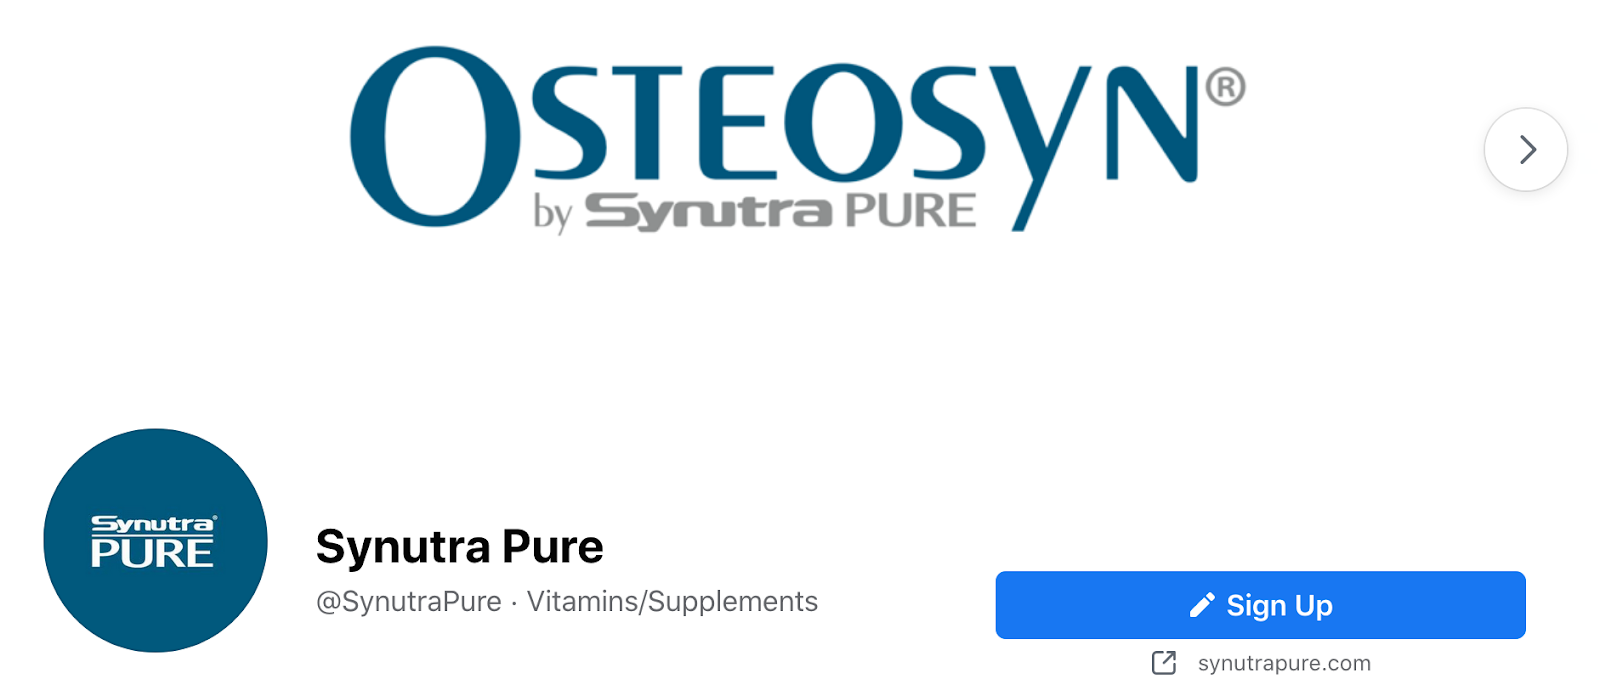 Osteosyn by Synutra Pure | Health Brands